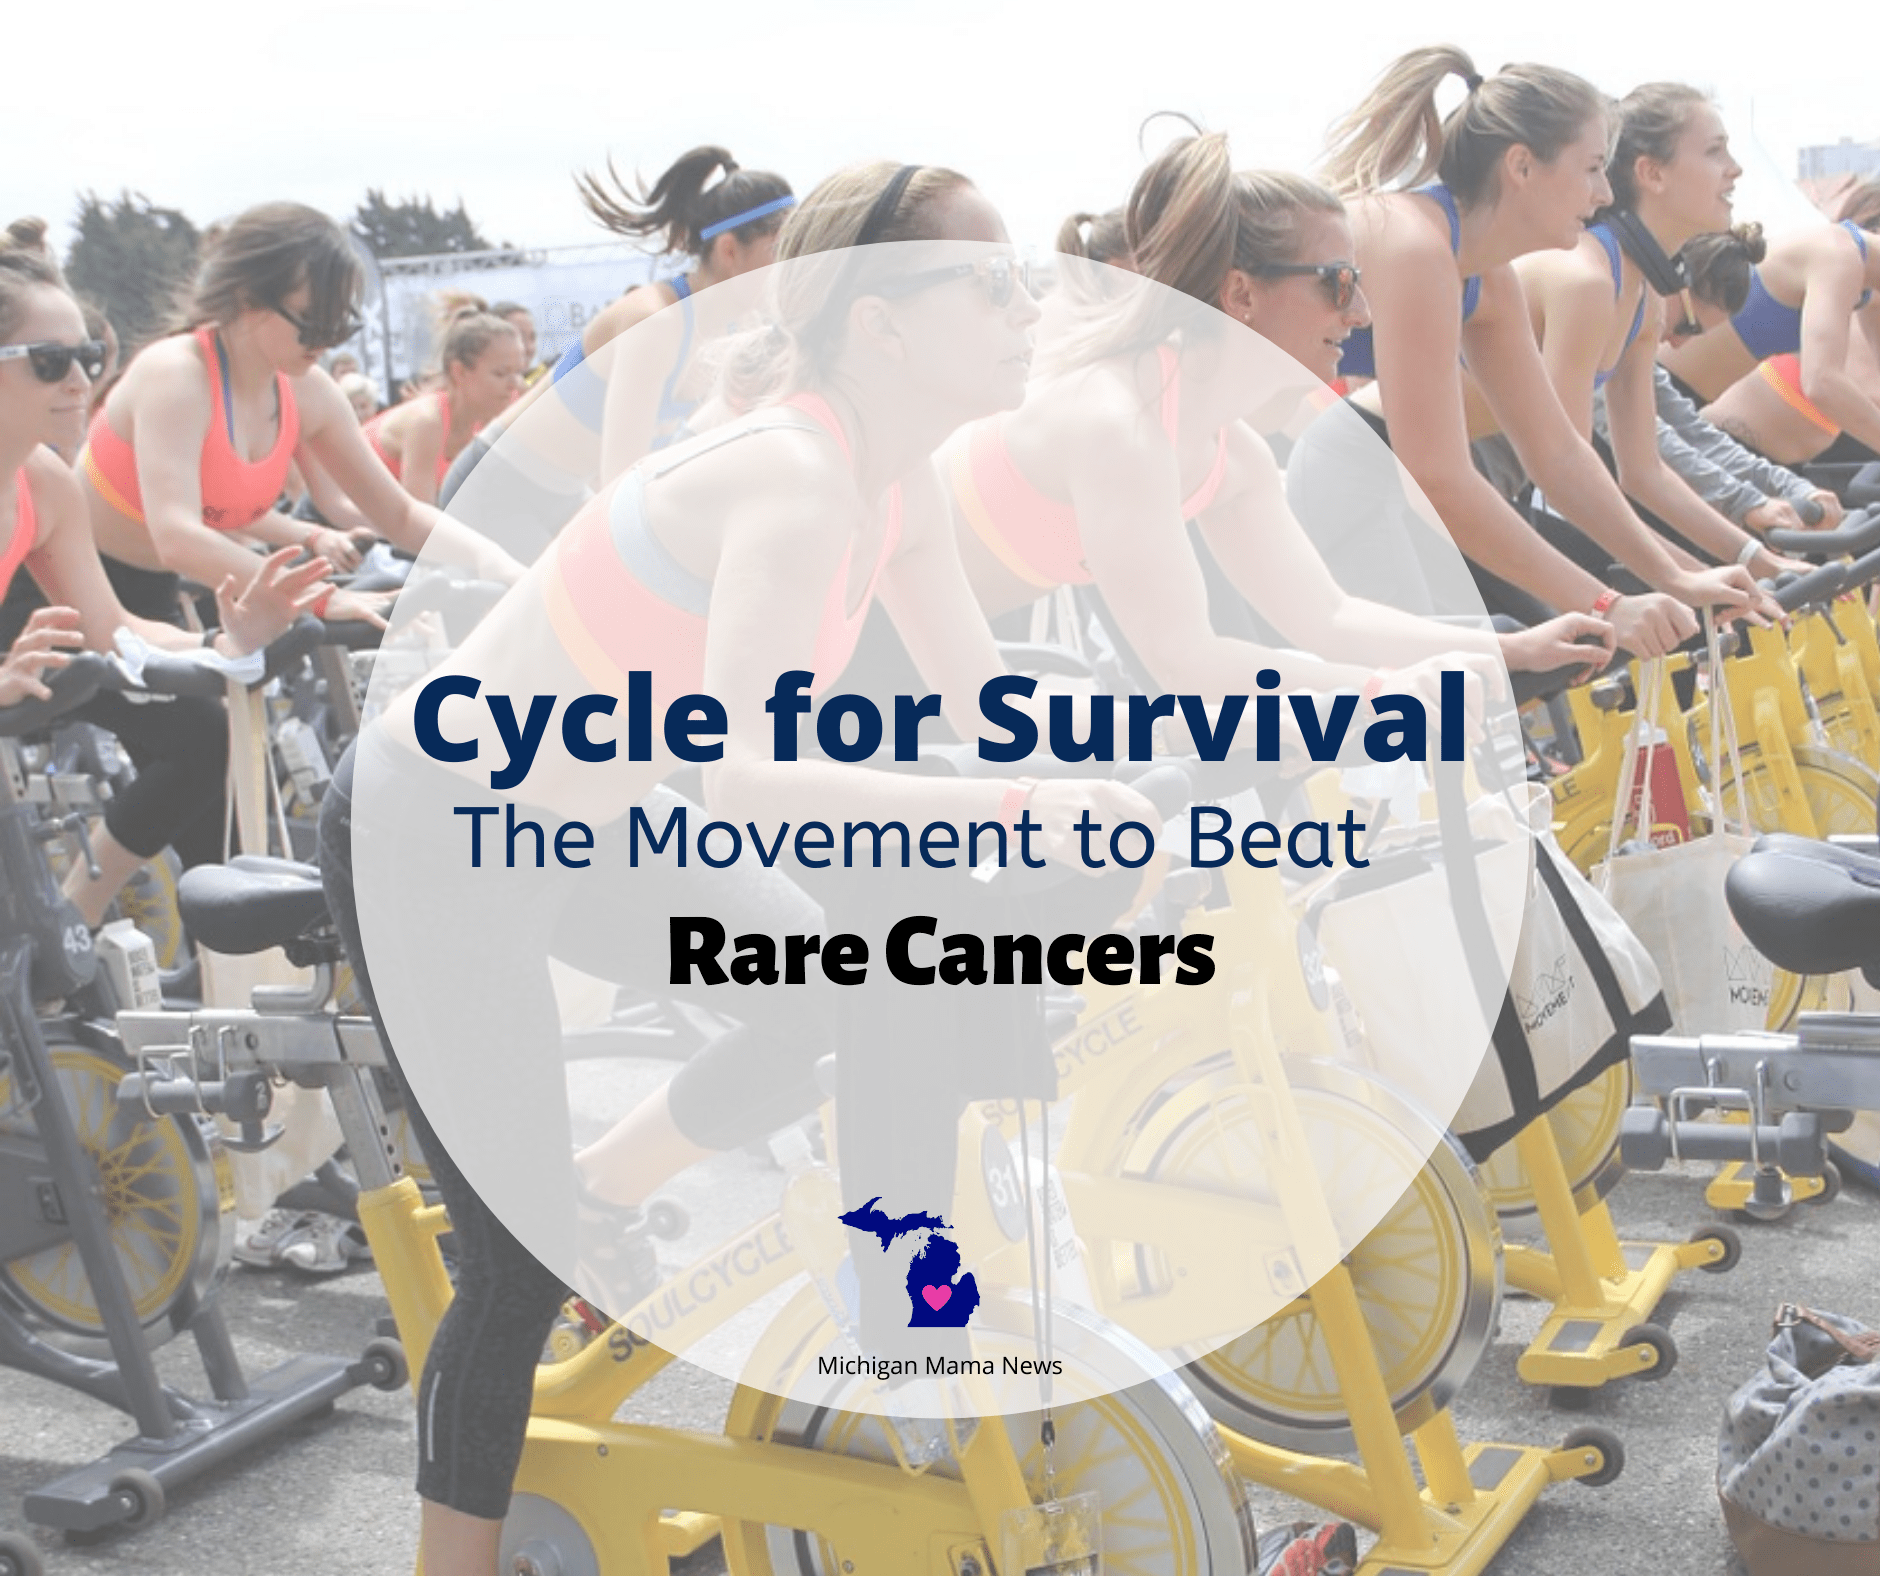 Cycle for Survival: The Movement to Beat Rare Cancers